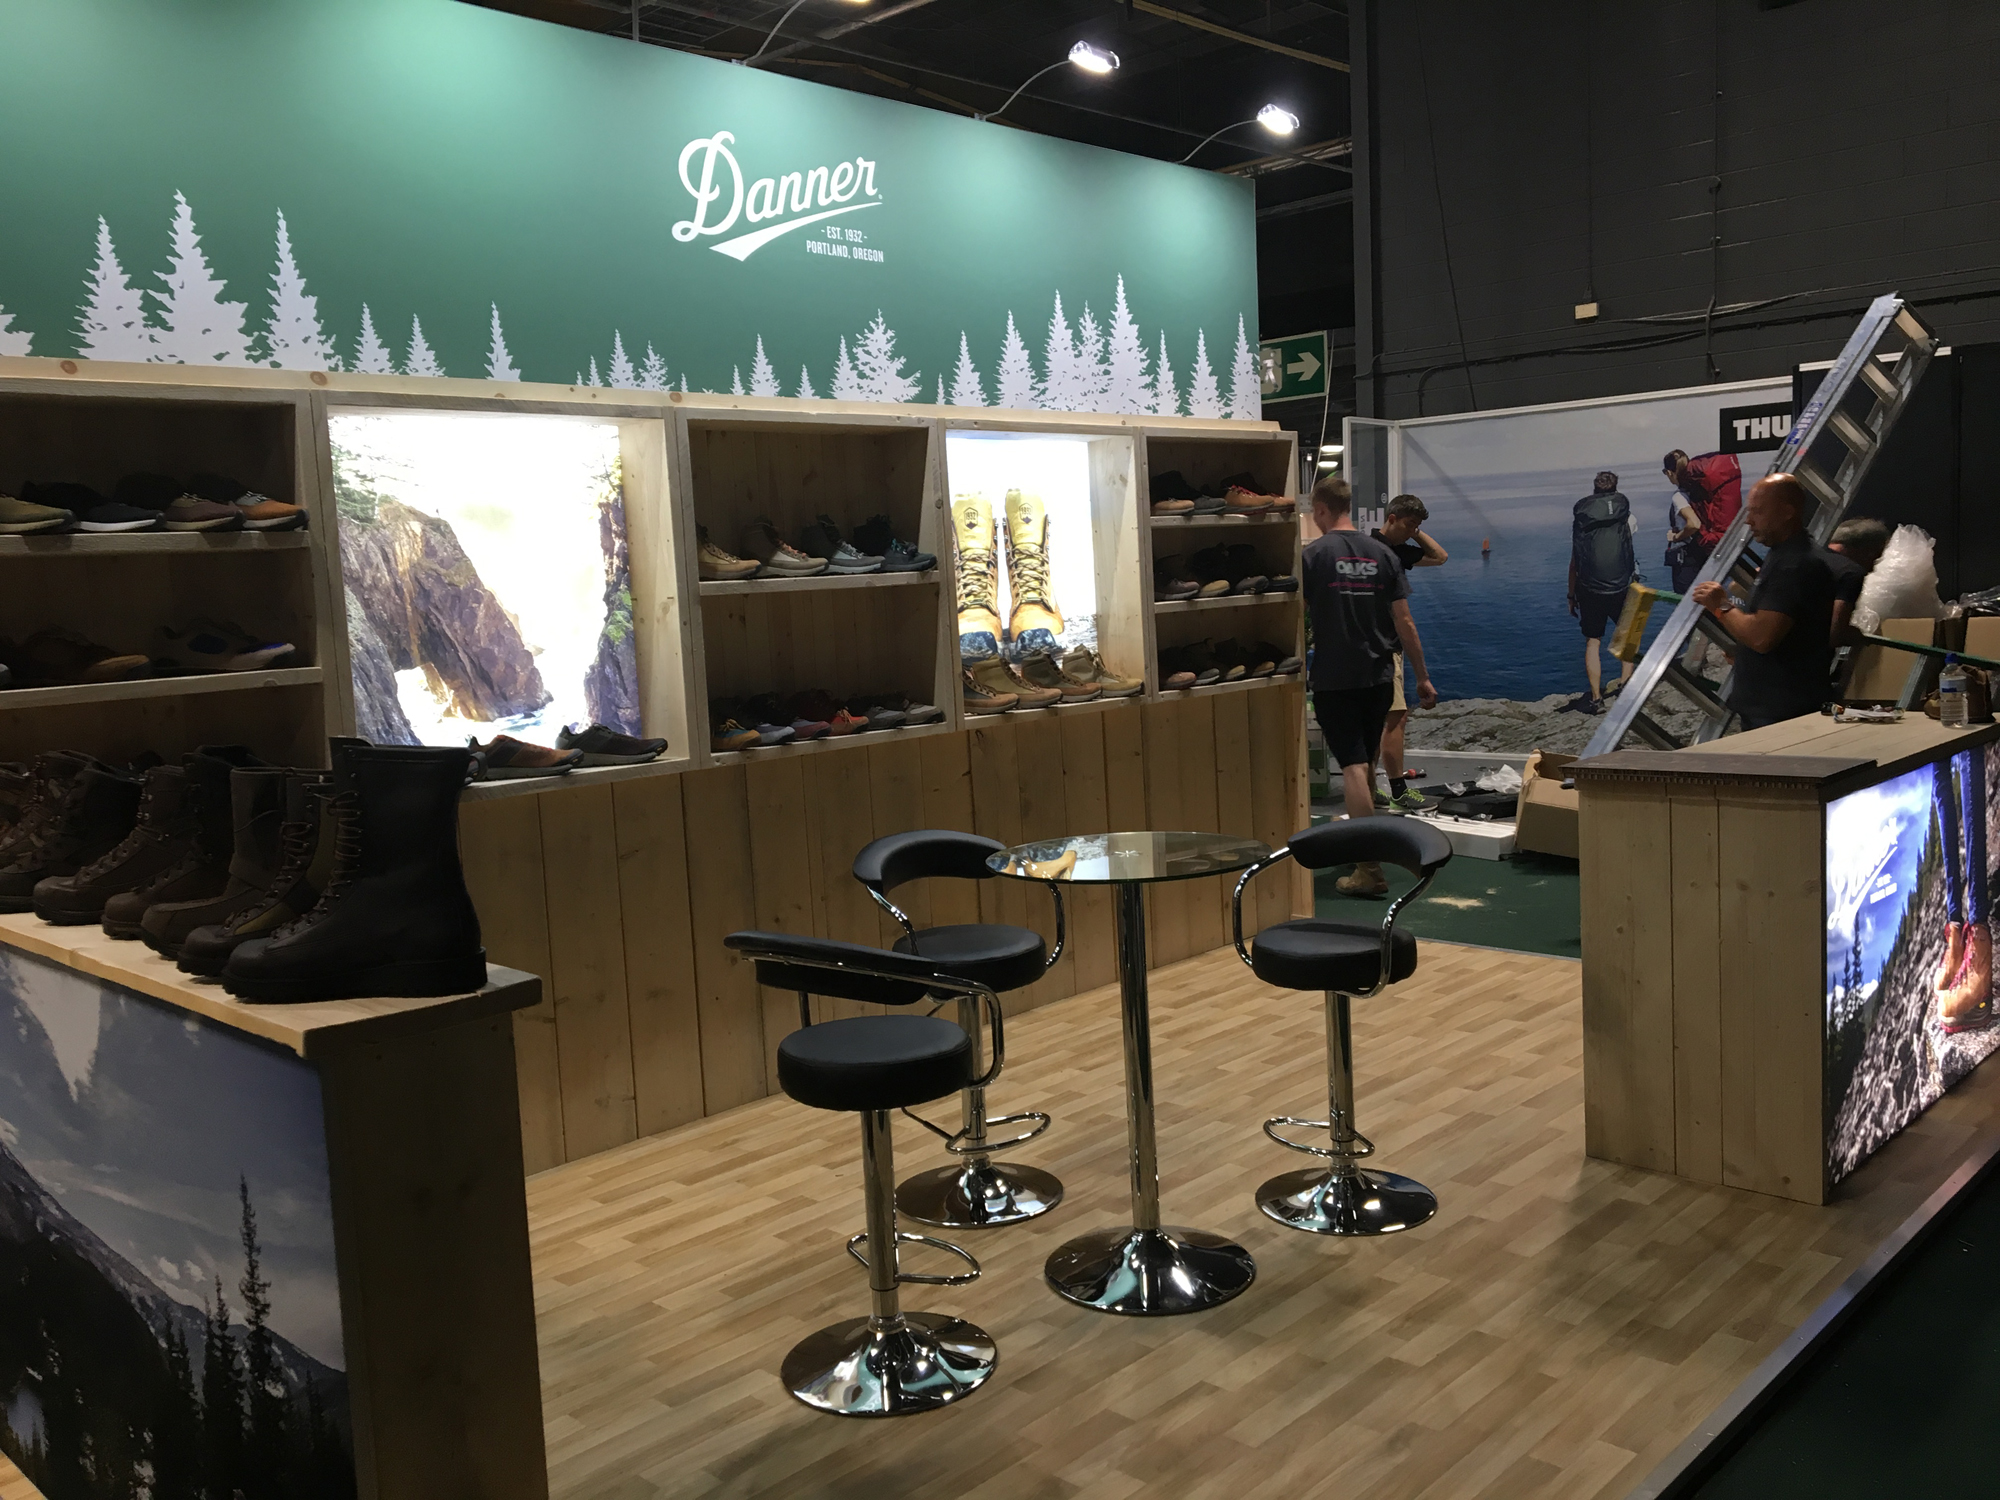 Exhibition Stand Lighting Uk : The importance of good lighting on an exhibition stand oaks